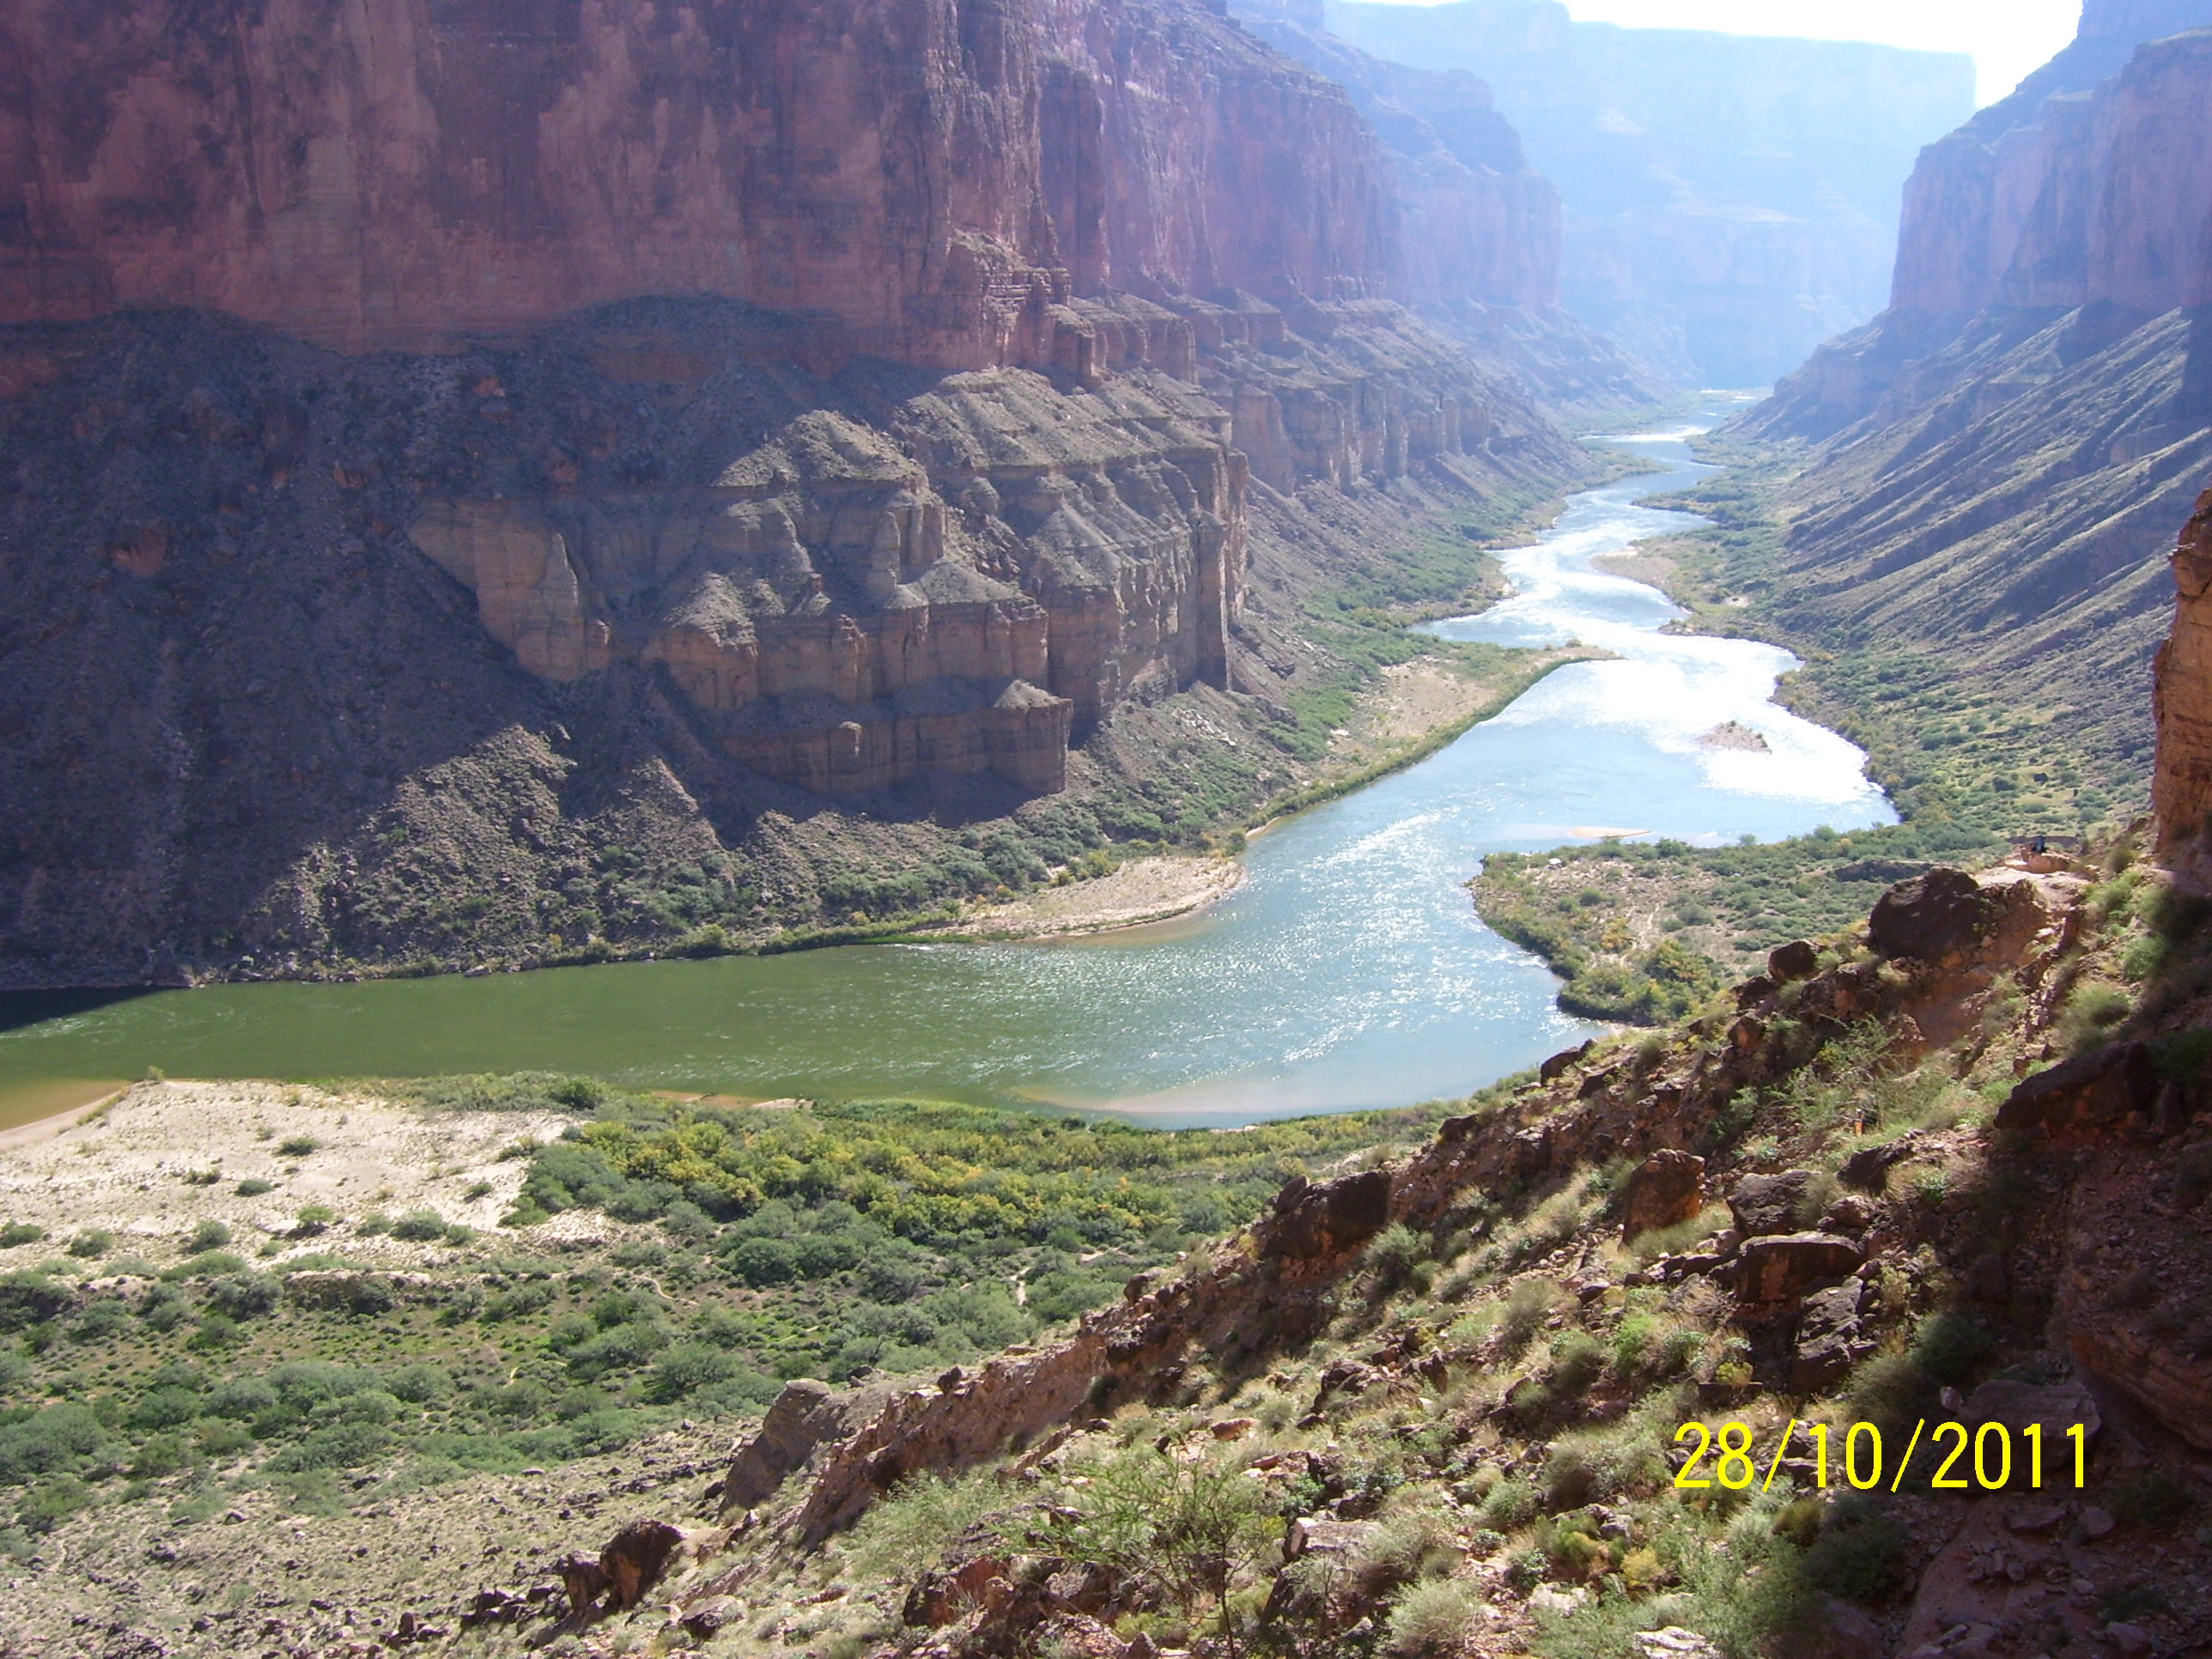 View of Grand Canyon from Nankoweap graineries